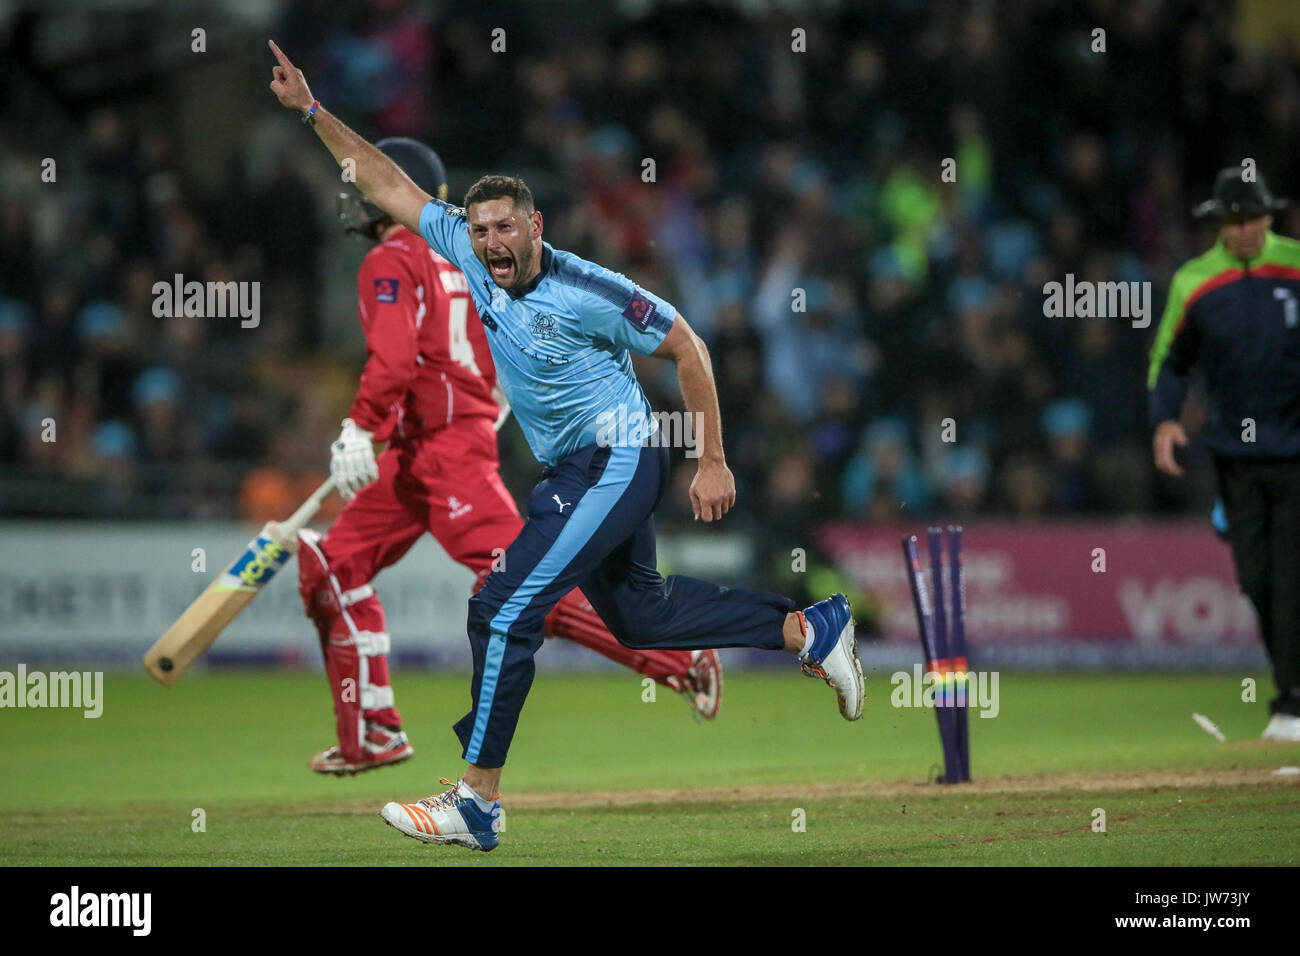 Leeds, UK. 11th Aug, 2017. Tim Bresnan (Yorkshire Vikings) celebrates running out Stephen Parry (Lancashire Lightning) and helping Yorkshire Vikings to an emphatic win in the Natwest T20 Blast game.  Yorkshire Vikings v Lancashire Lightning on Friday 11 August 2017. Photo by Mark P Doherty. Credit: Caught Light Photography Limited/Alamy Live News - Stock Image